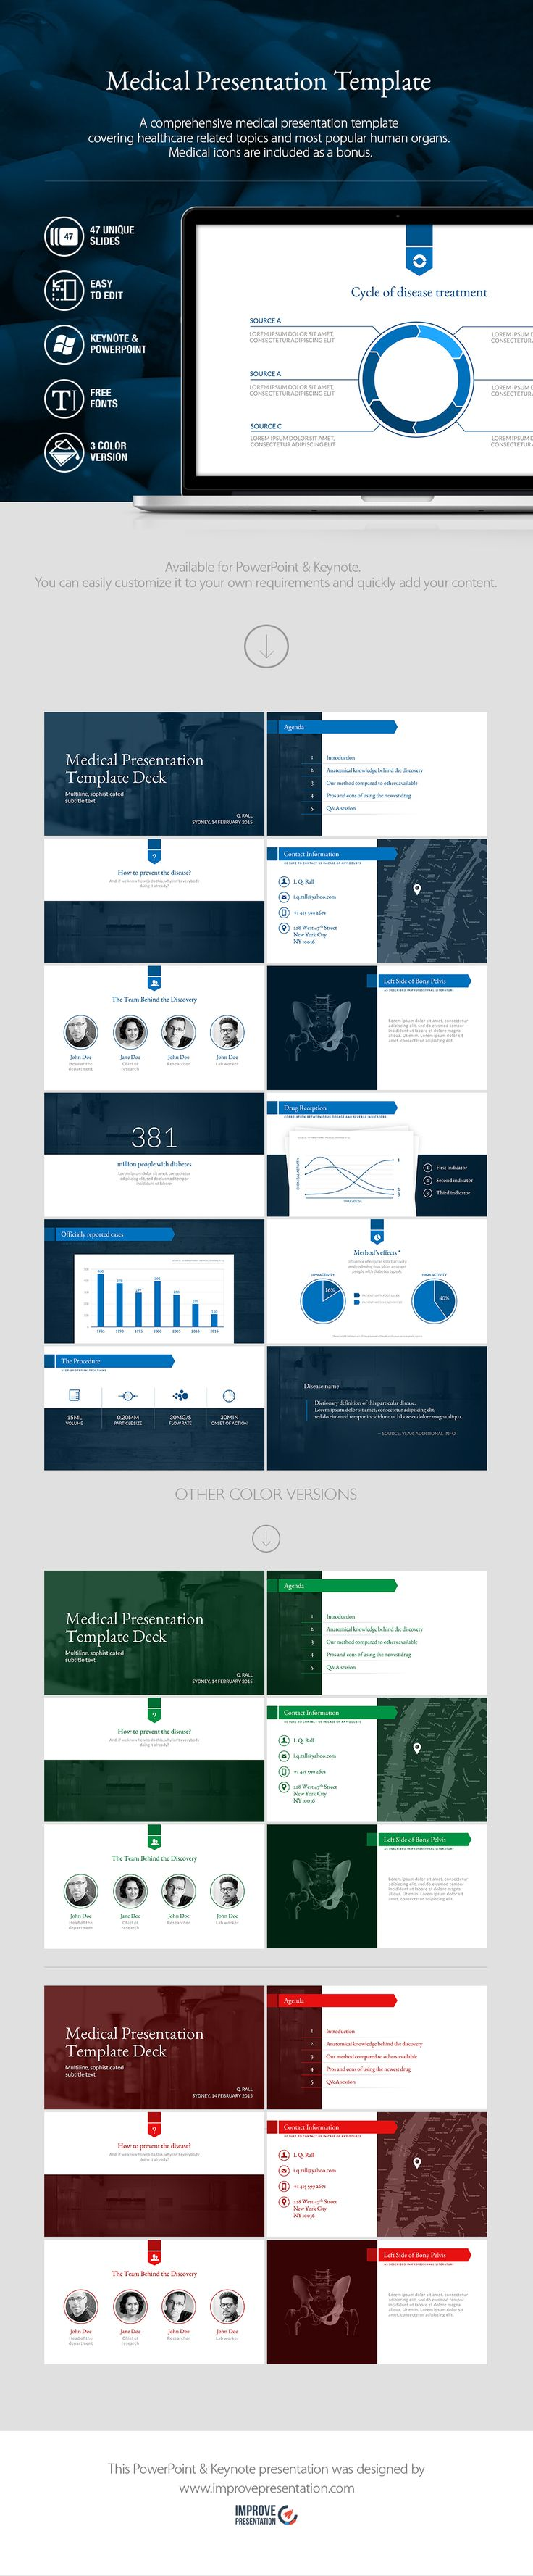 best ideas about top powerpoint templates vector a comprehensive medical presentation template covering healthcare related topics and most popular human organs medical